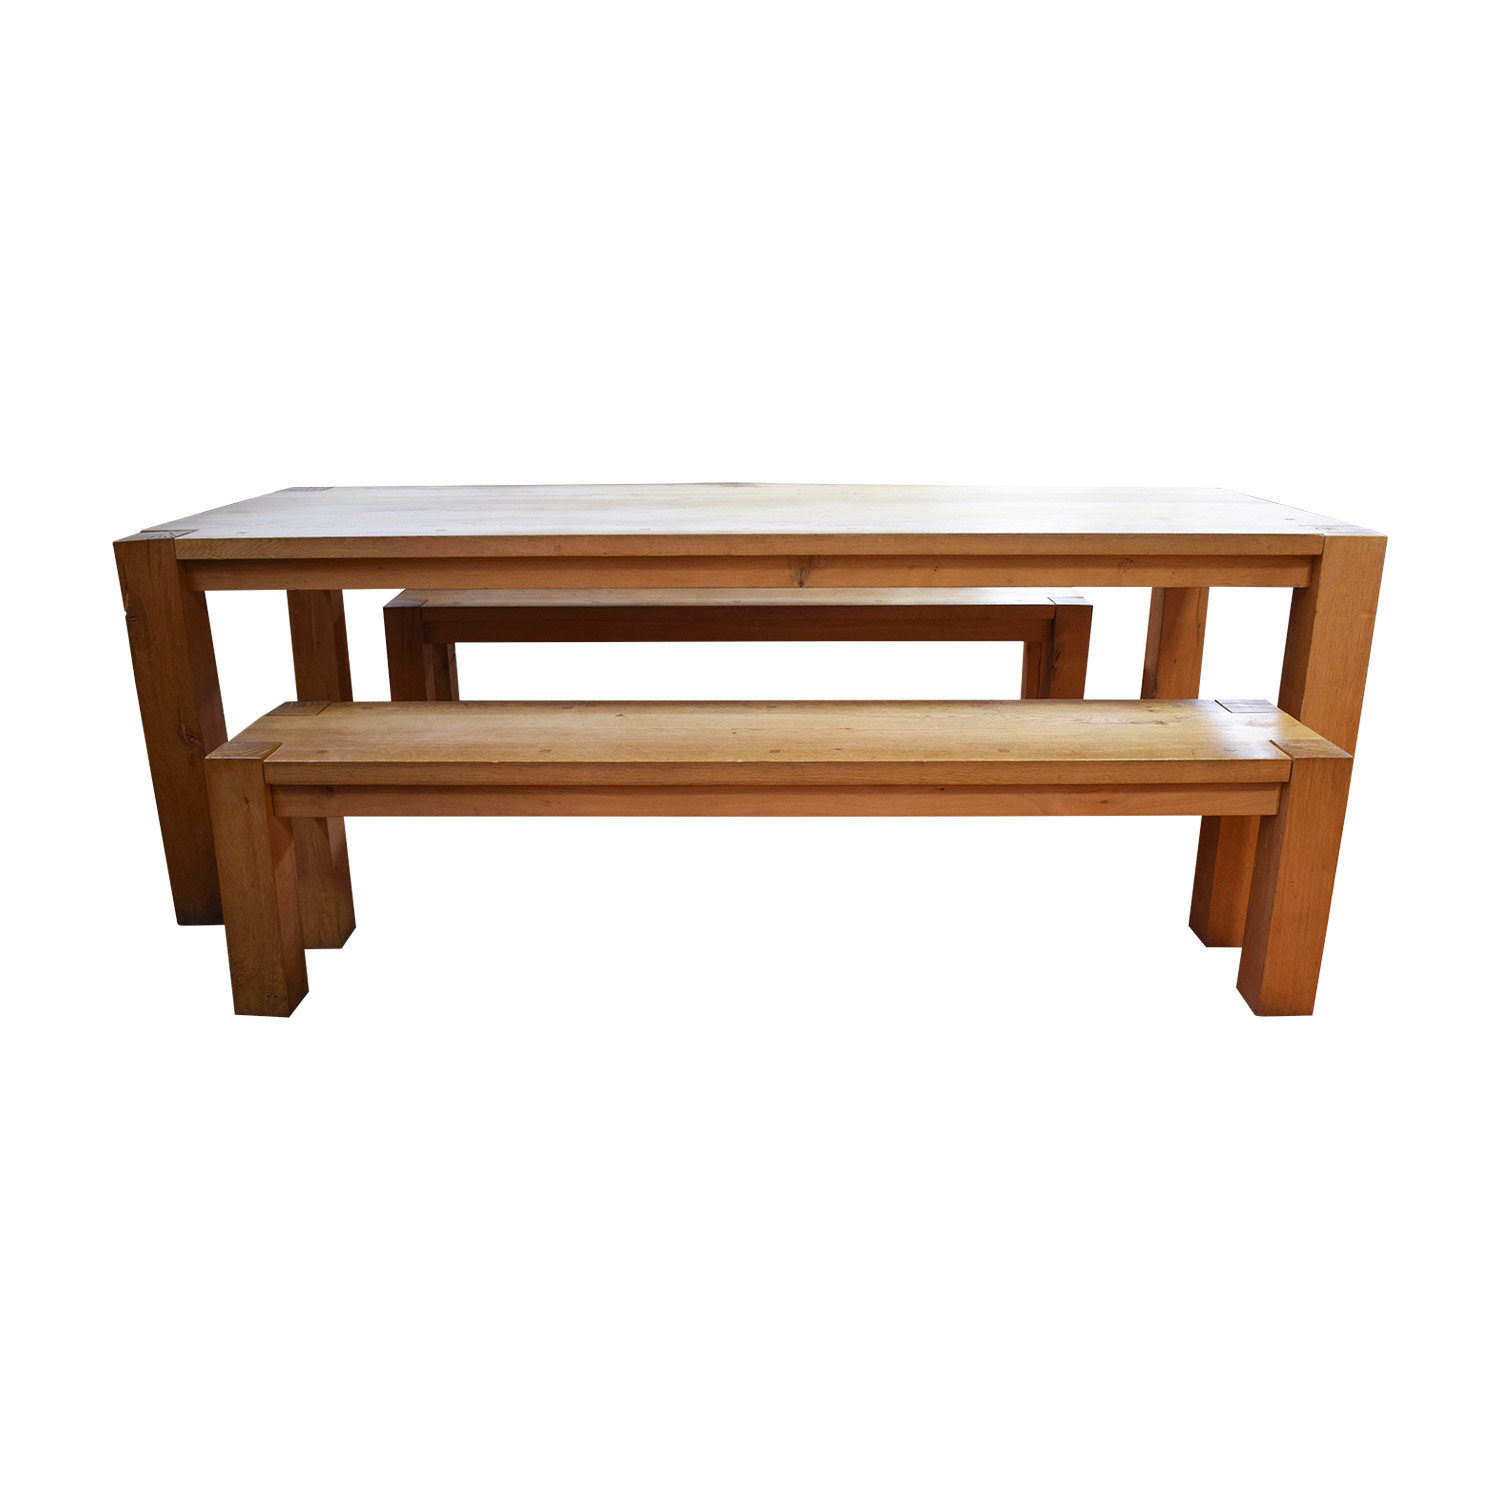 Crate & Barrel Crate & Barrel Big Sure Natural Dining Table with Benches discount